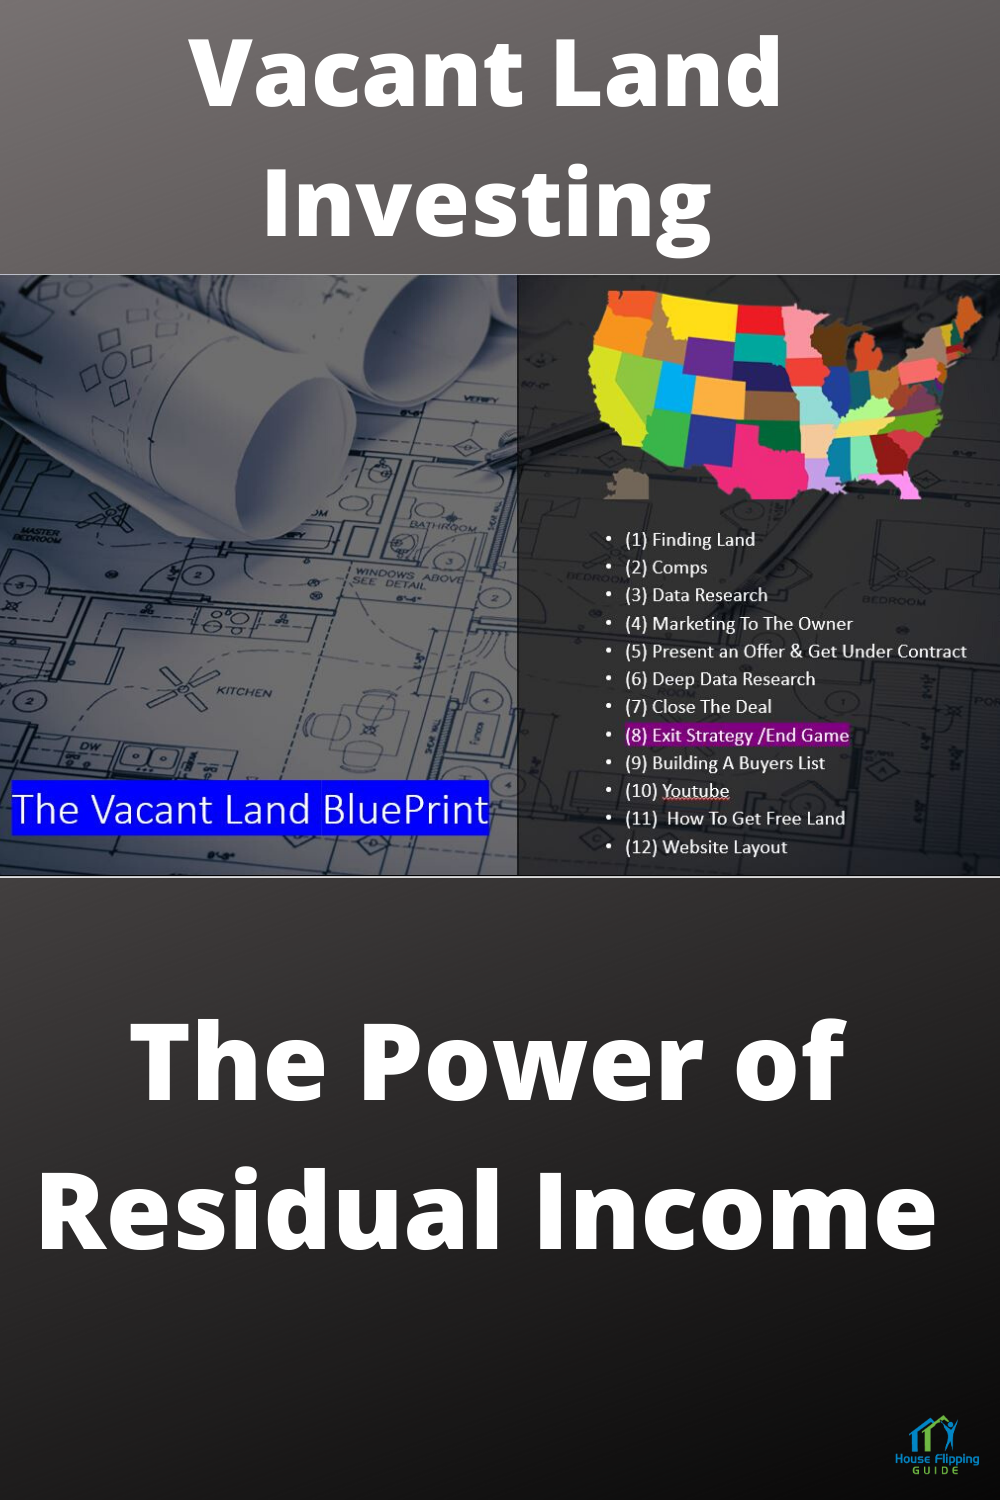 Vacant Land Investing Blueprint - The Power of Residual Income